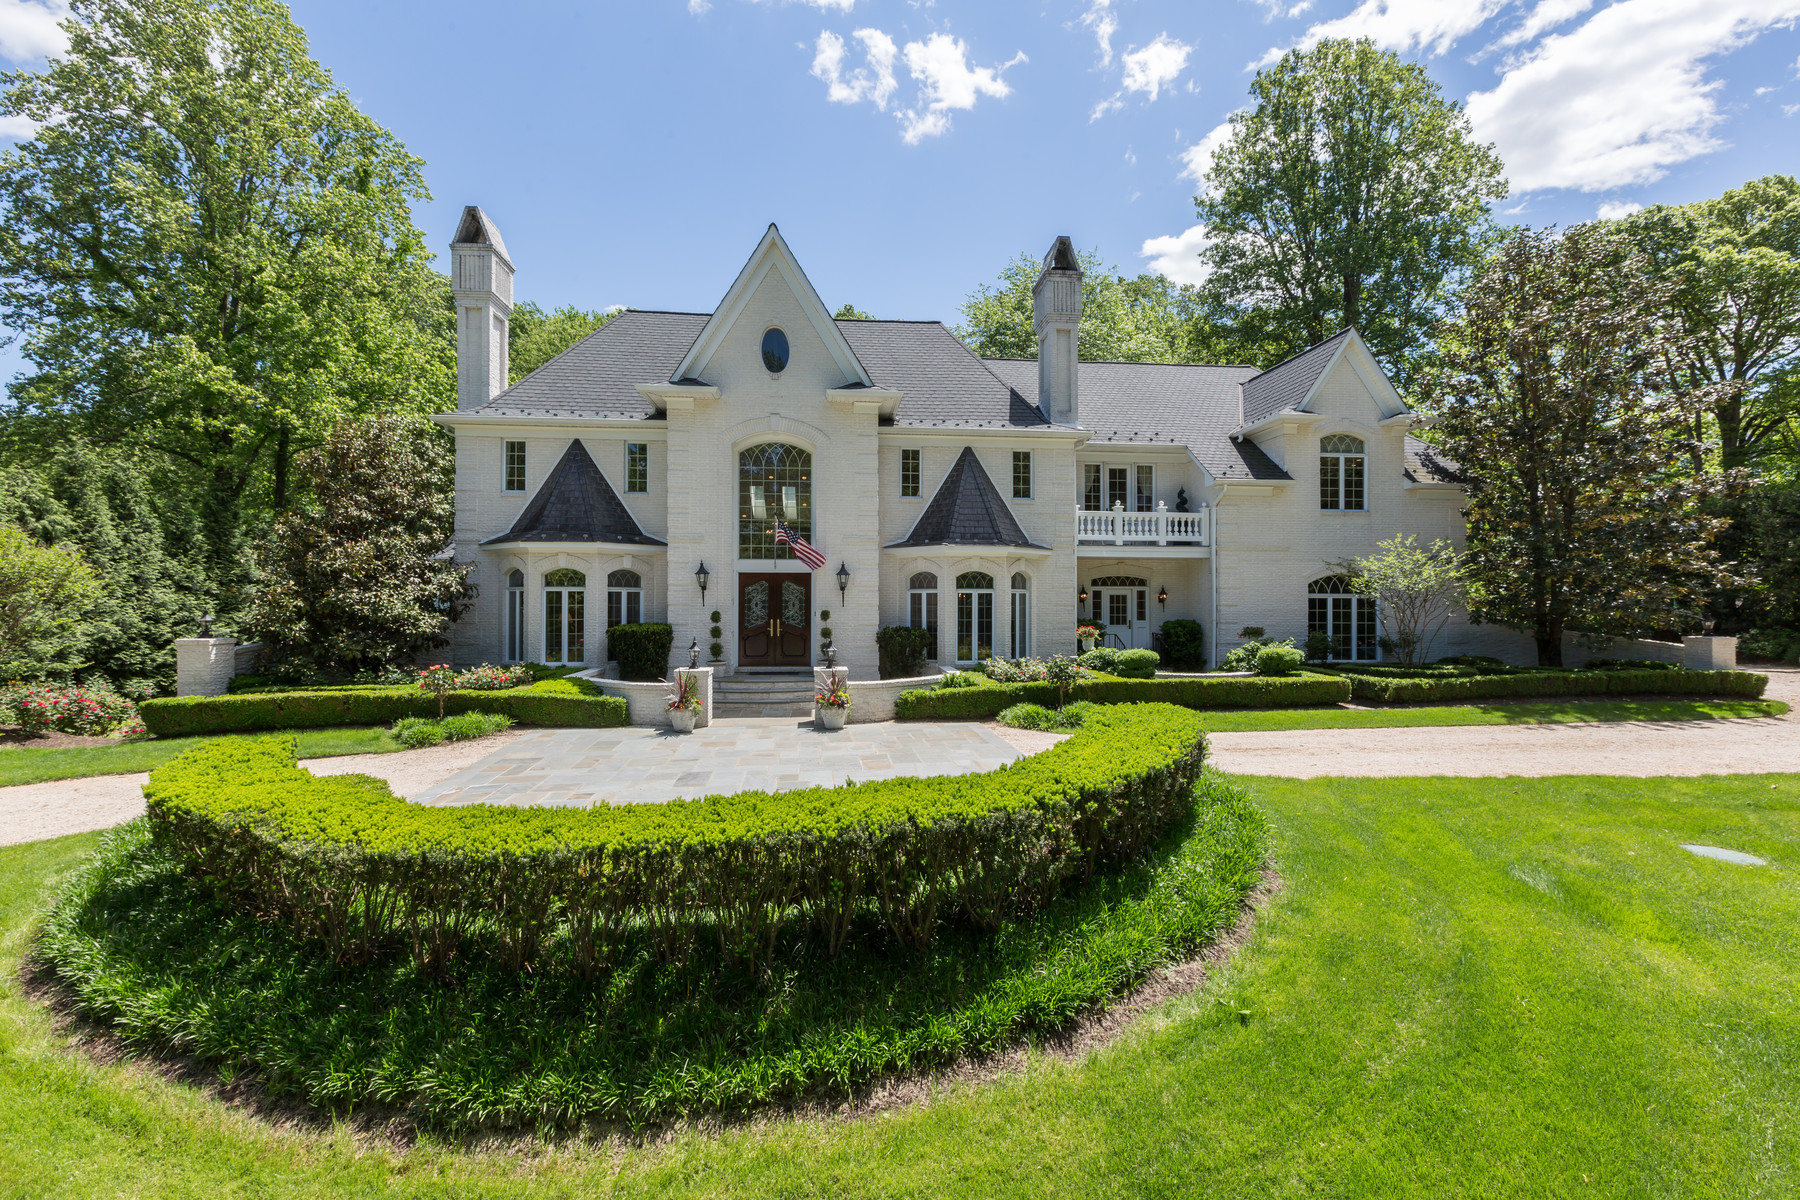 Single Family Home for Sale at 1031 Towlston Road, Mclean 1031 Towlston Rd McLean, Virginia 22102 United States